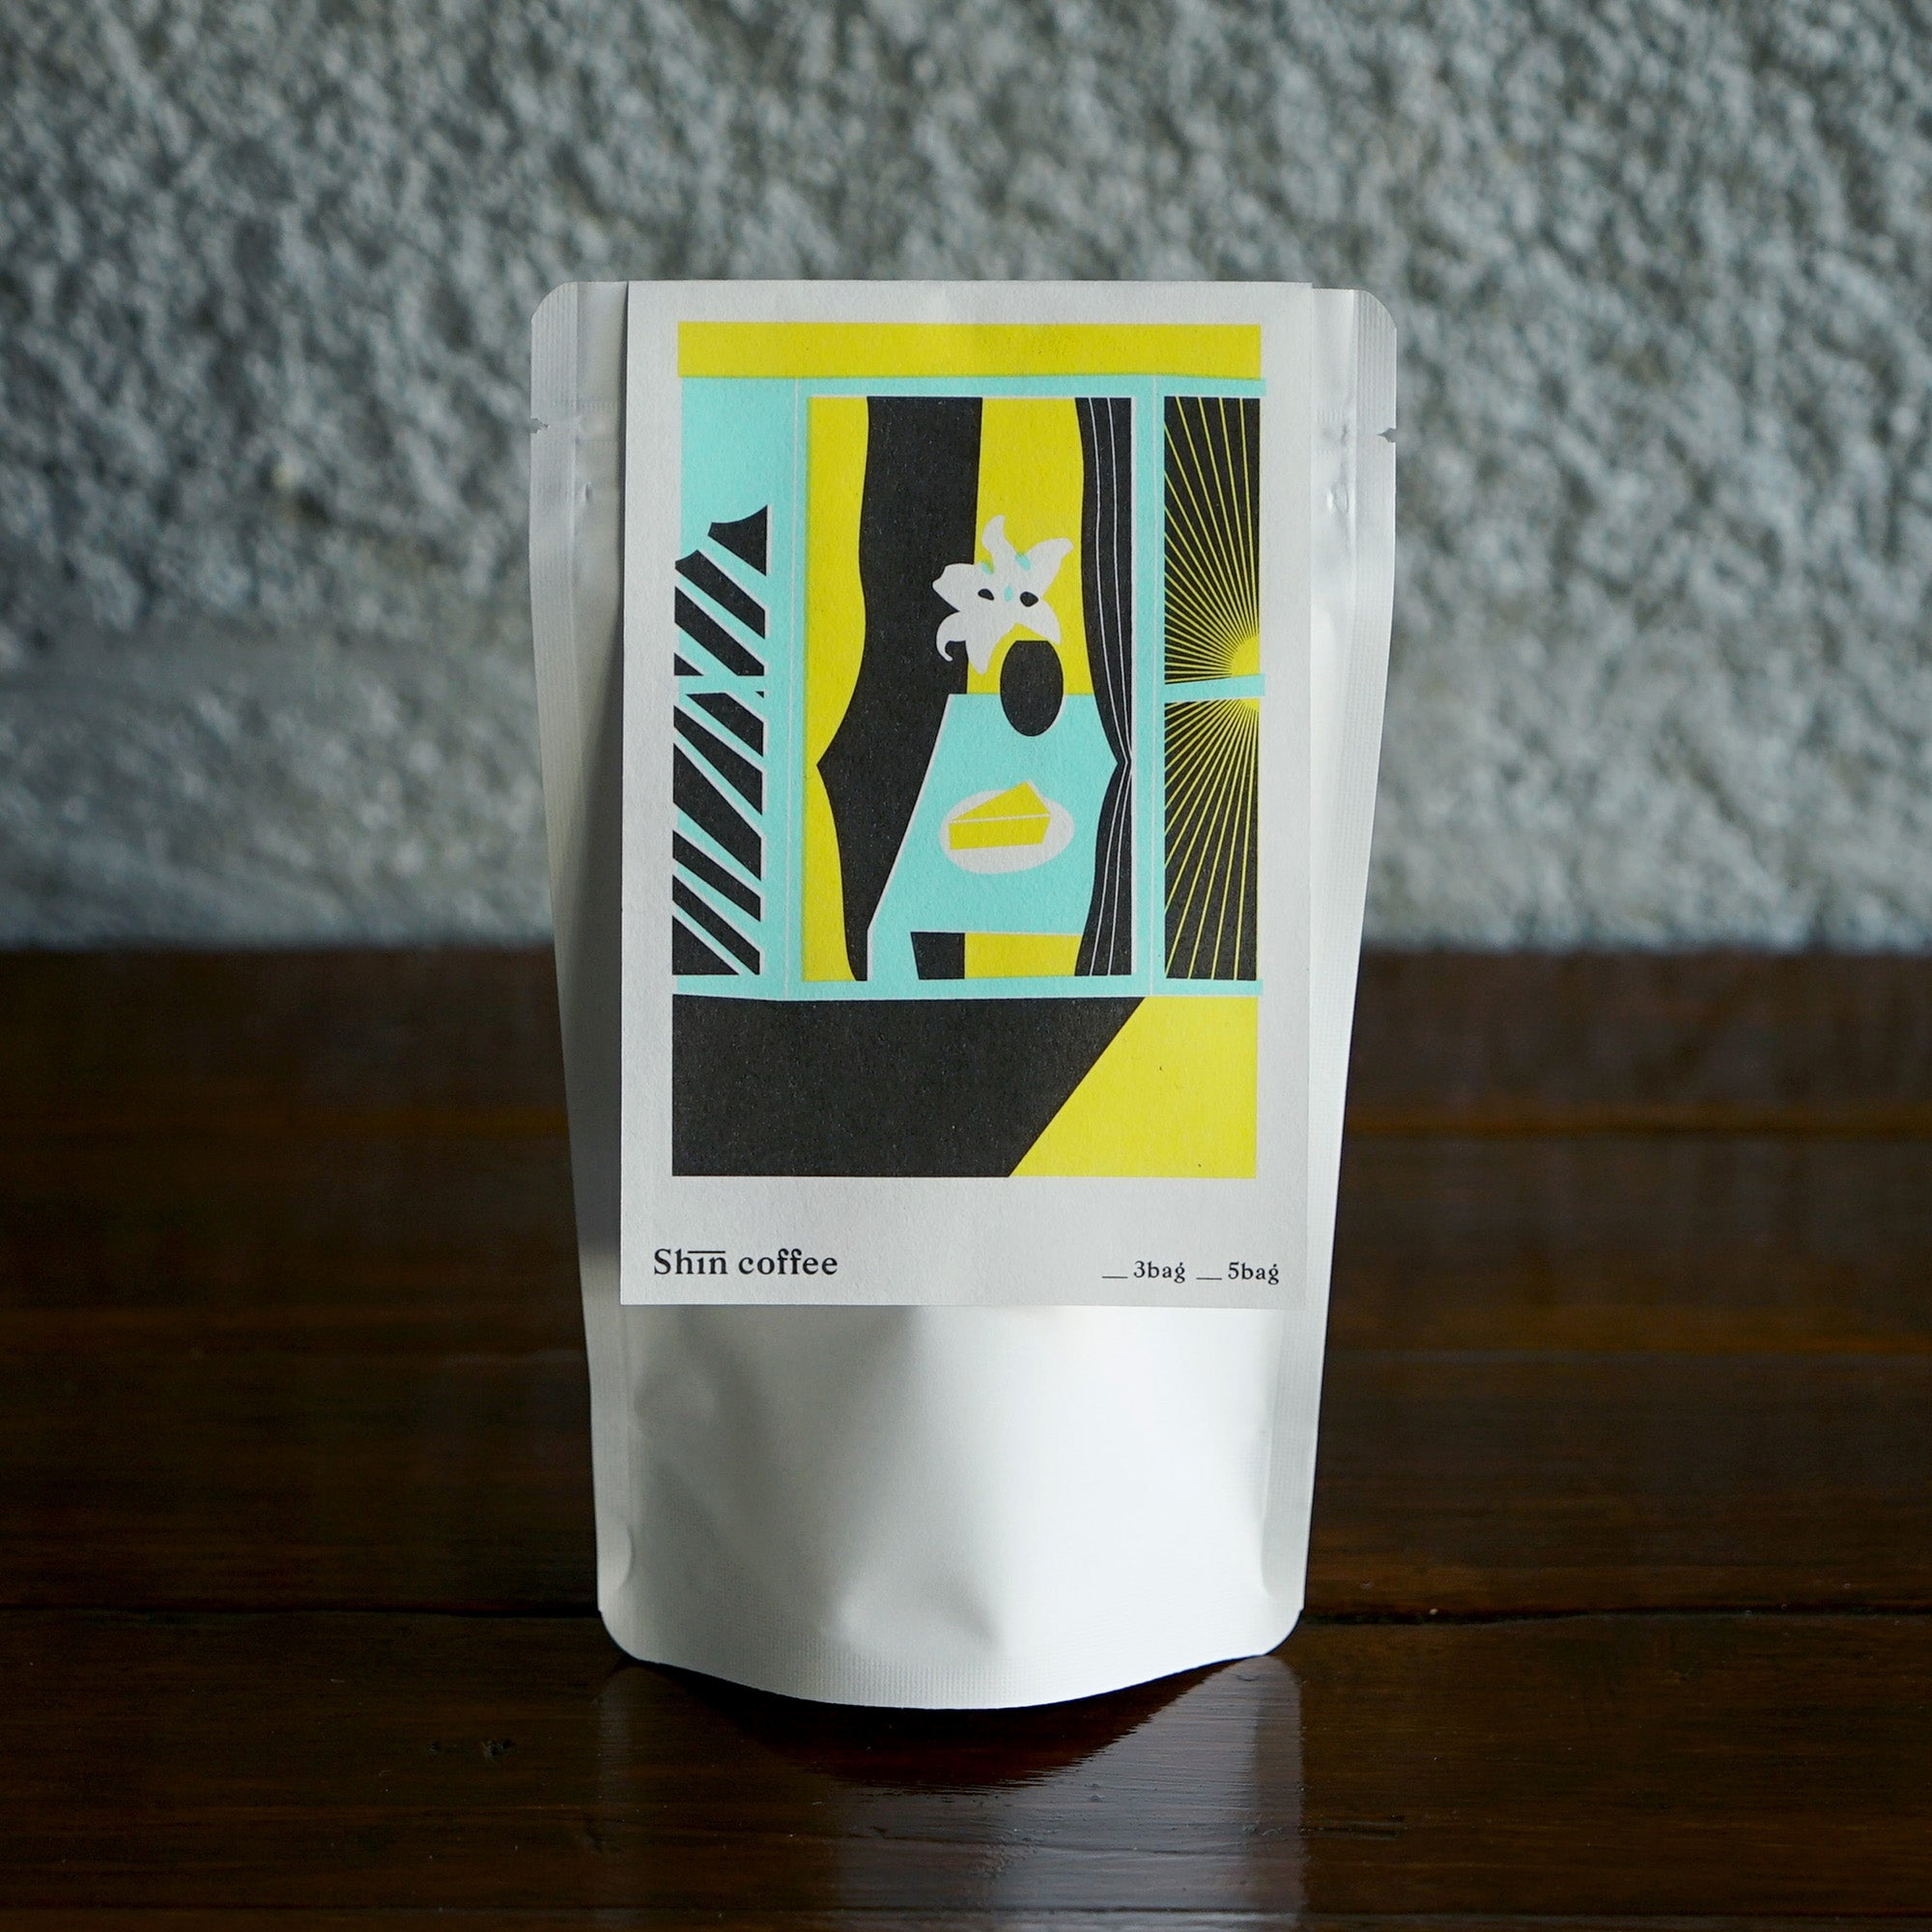 【Shin coffee】Afternoon ~5bag~ - tagcafe